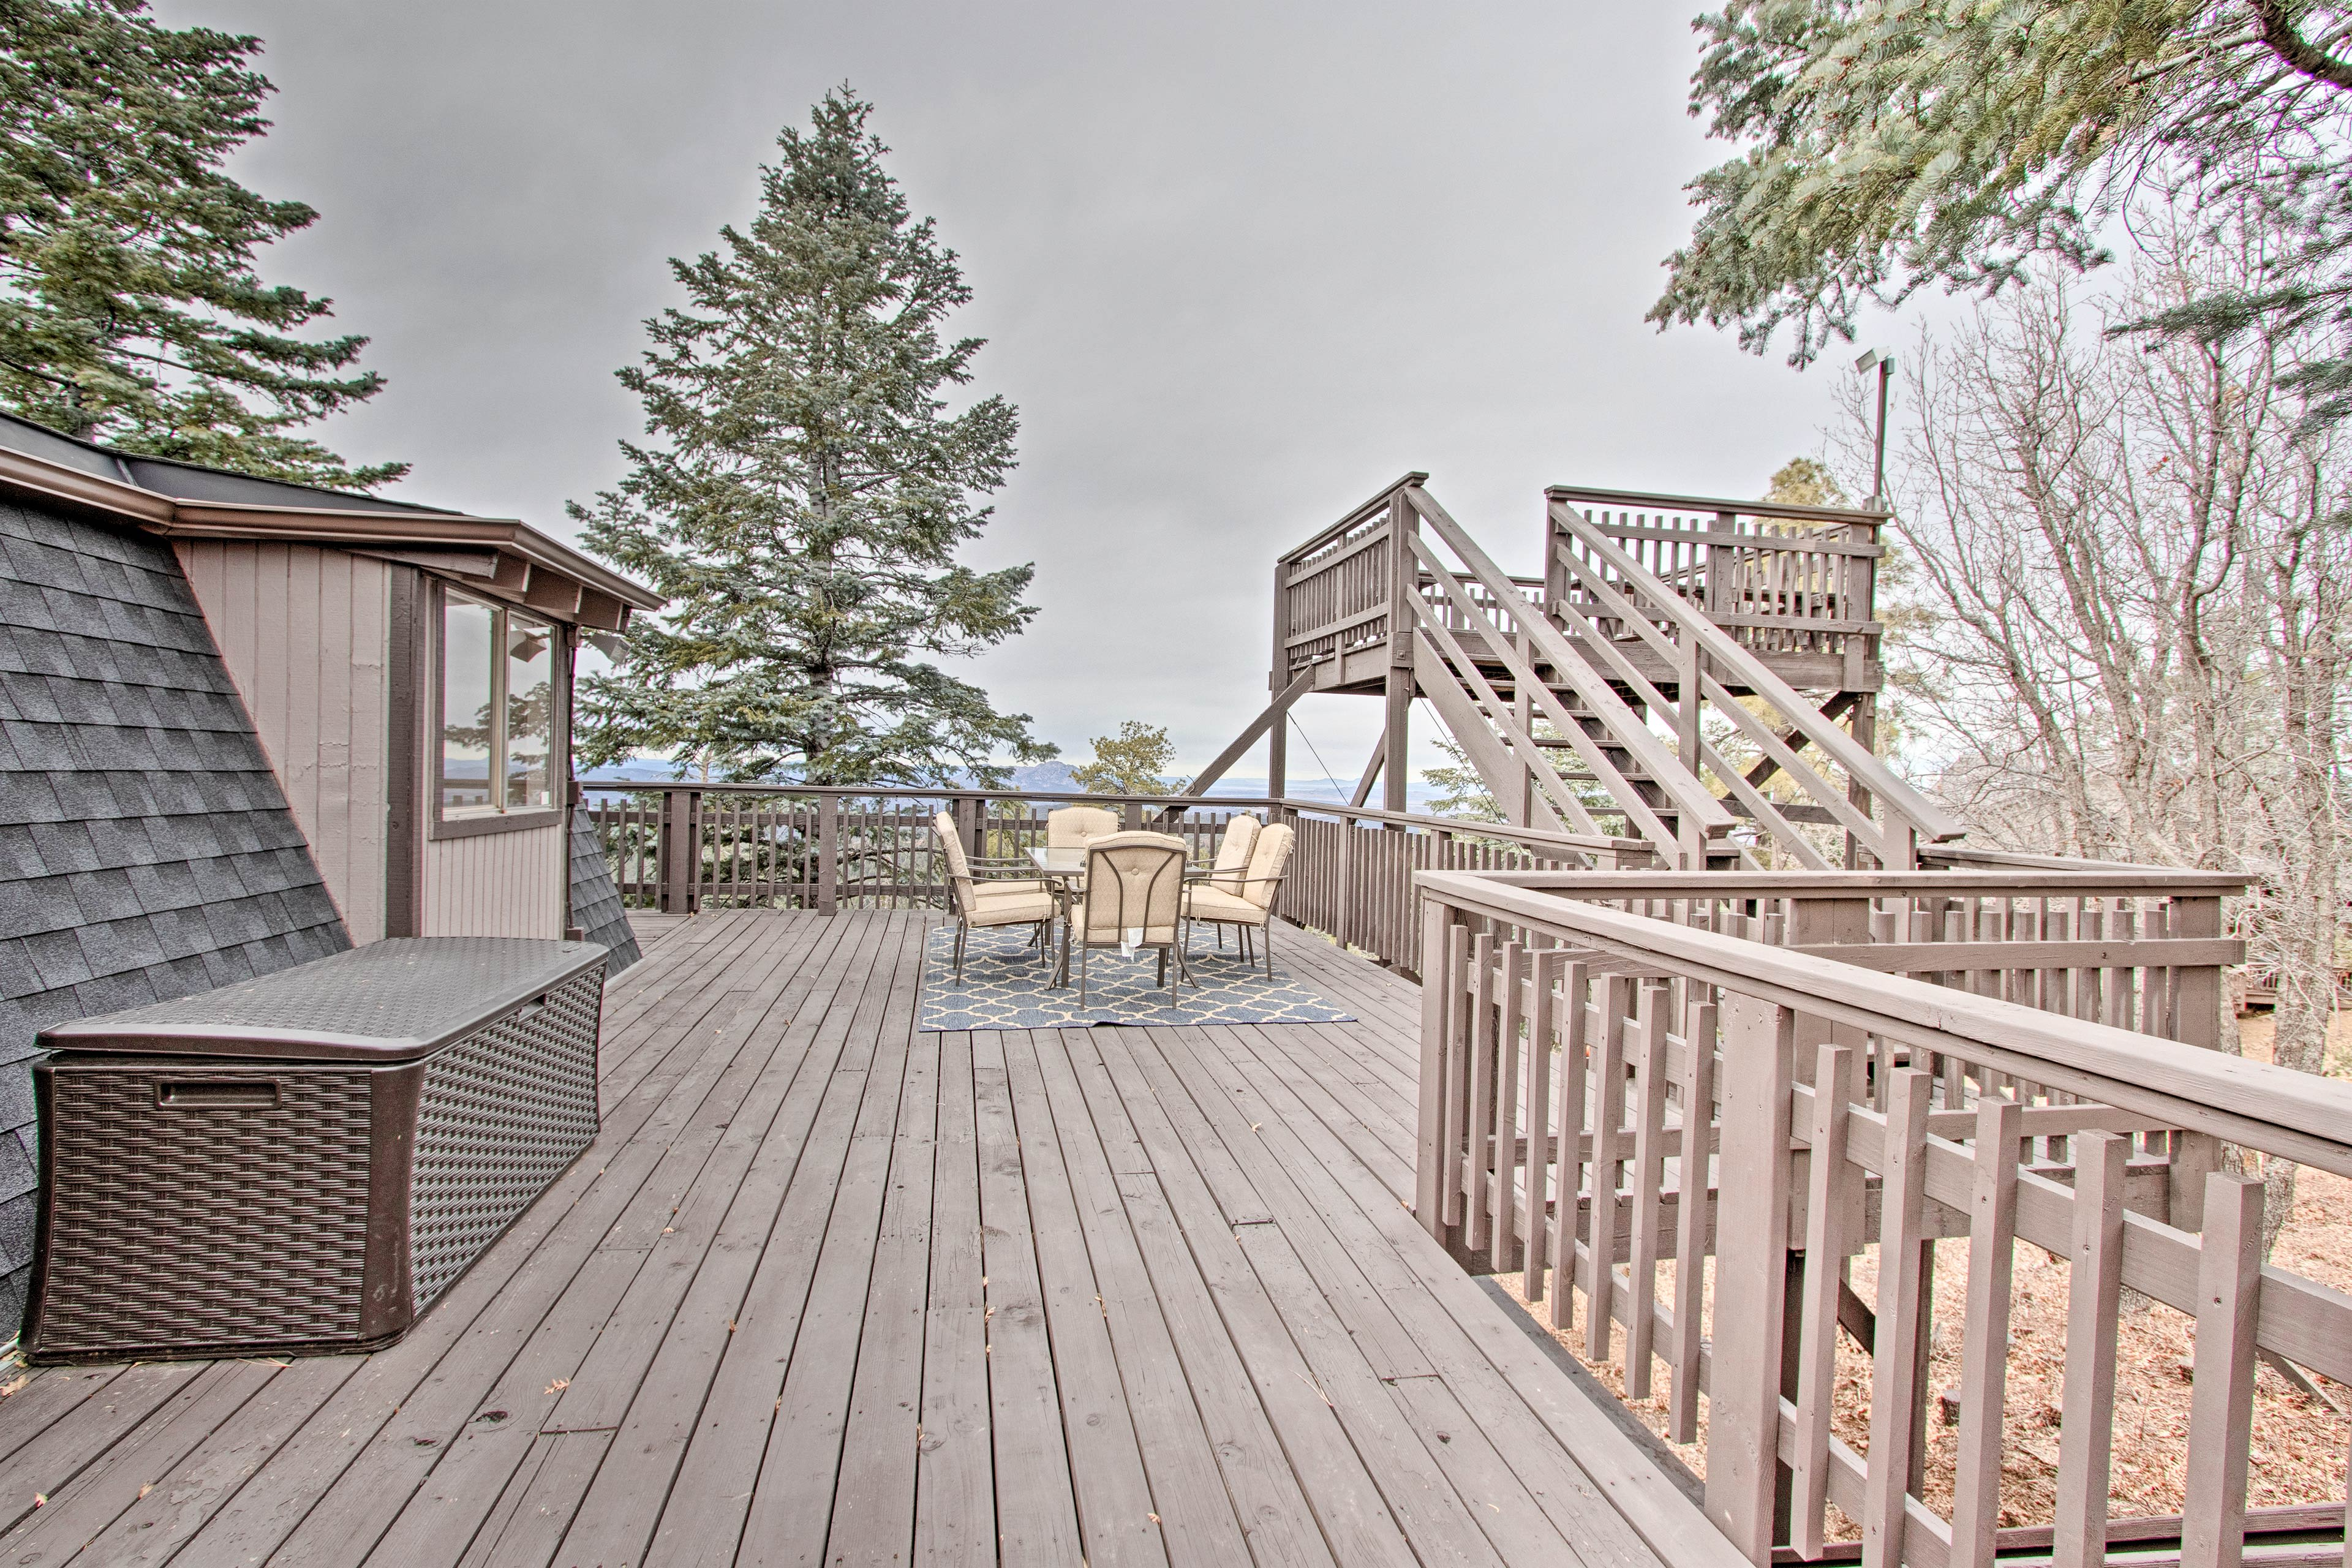 There's plenty of room for activities on this deck.